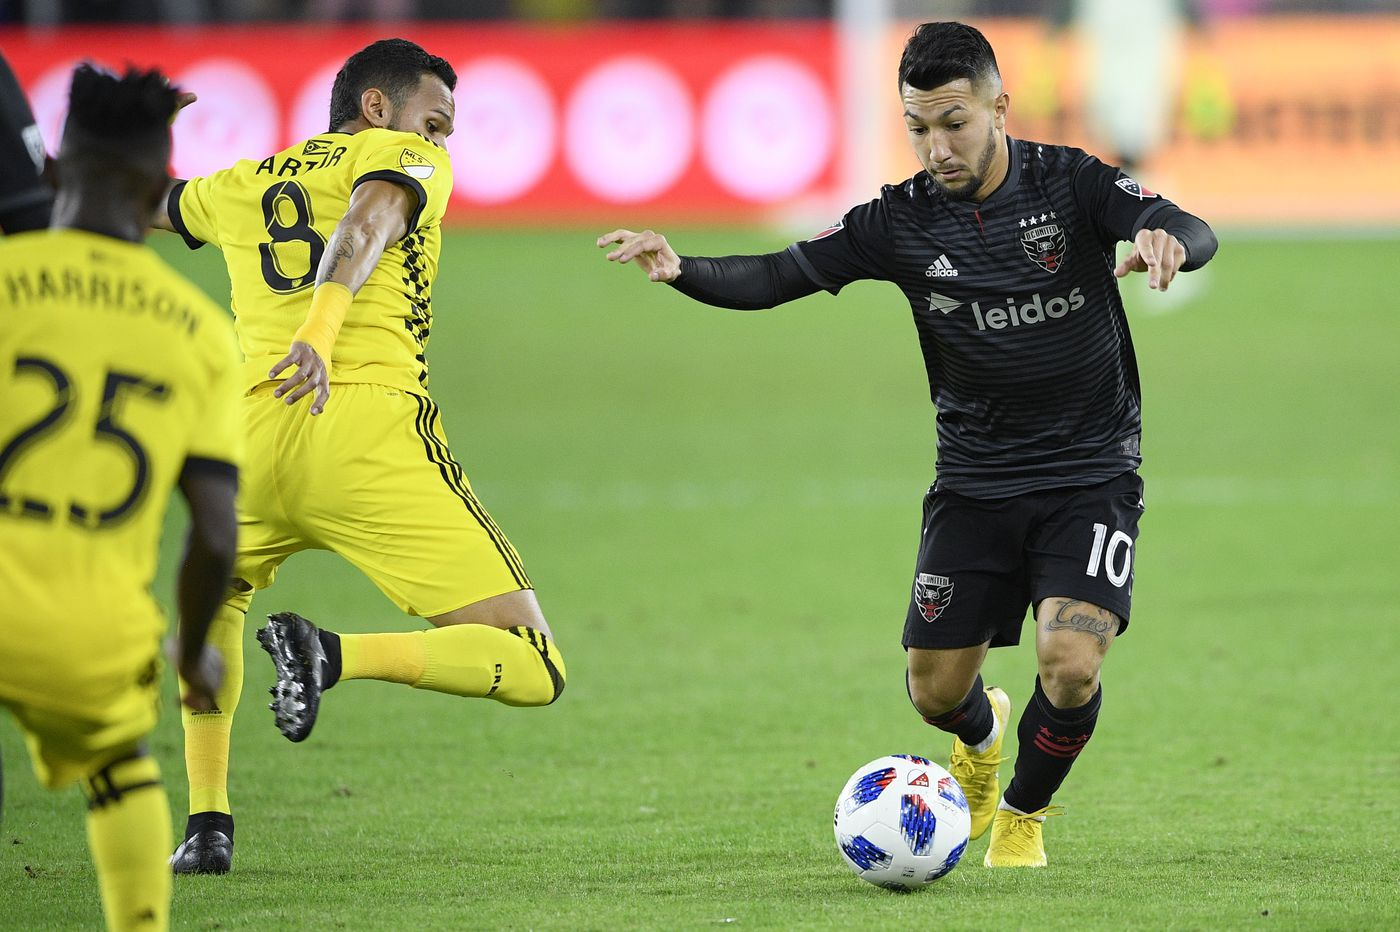 Paris Saint-Germain's move to sign D.C. United's Luciano Acosta's falls apart on last day of transfer window